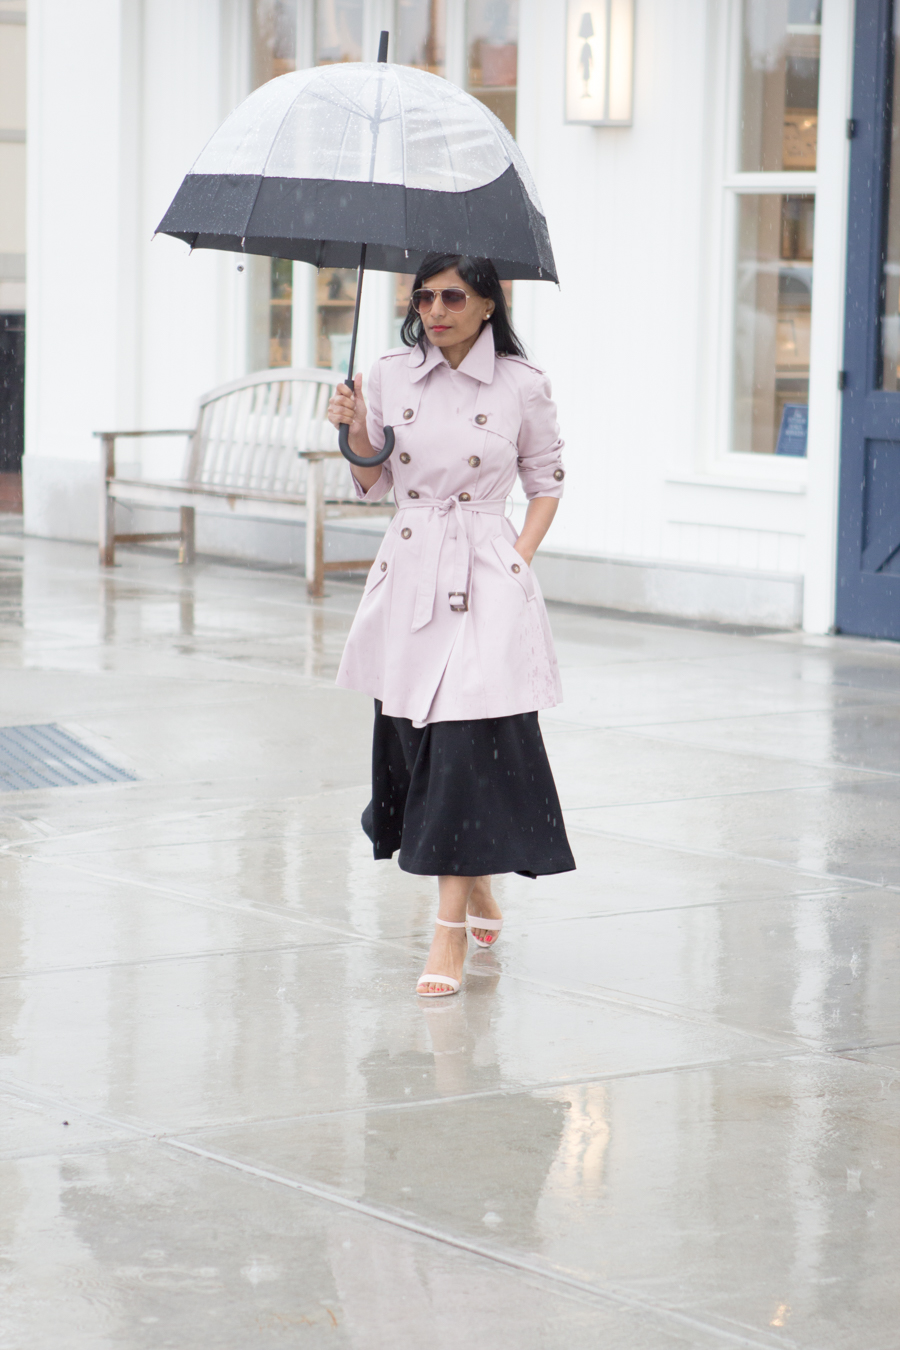 trench, trench coat, rain coat, spring topper, easy chic, preppy chic, blush coat, blush sandals, midi skirt, full black skirt, red lips, hunter, mommy style, mom style, petite fashion, boston